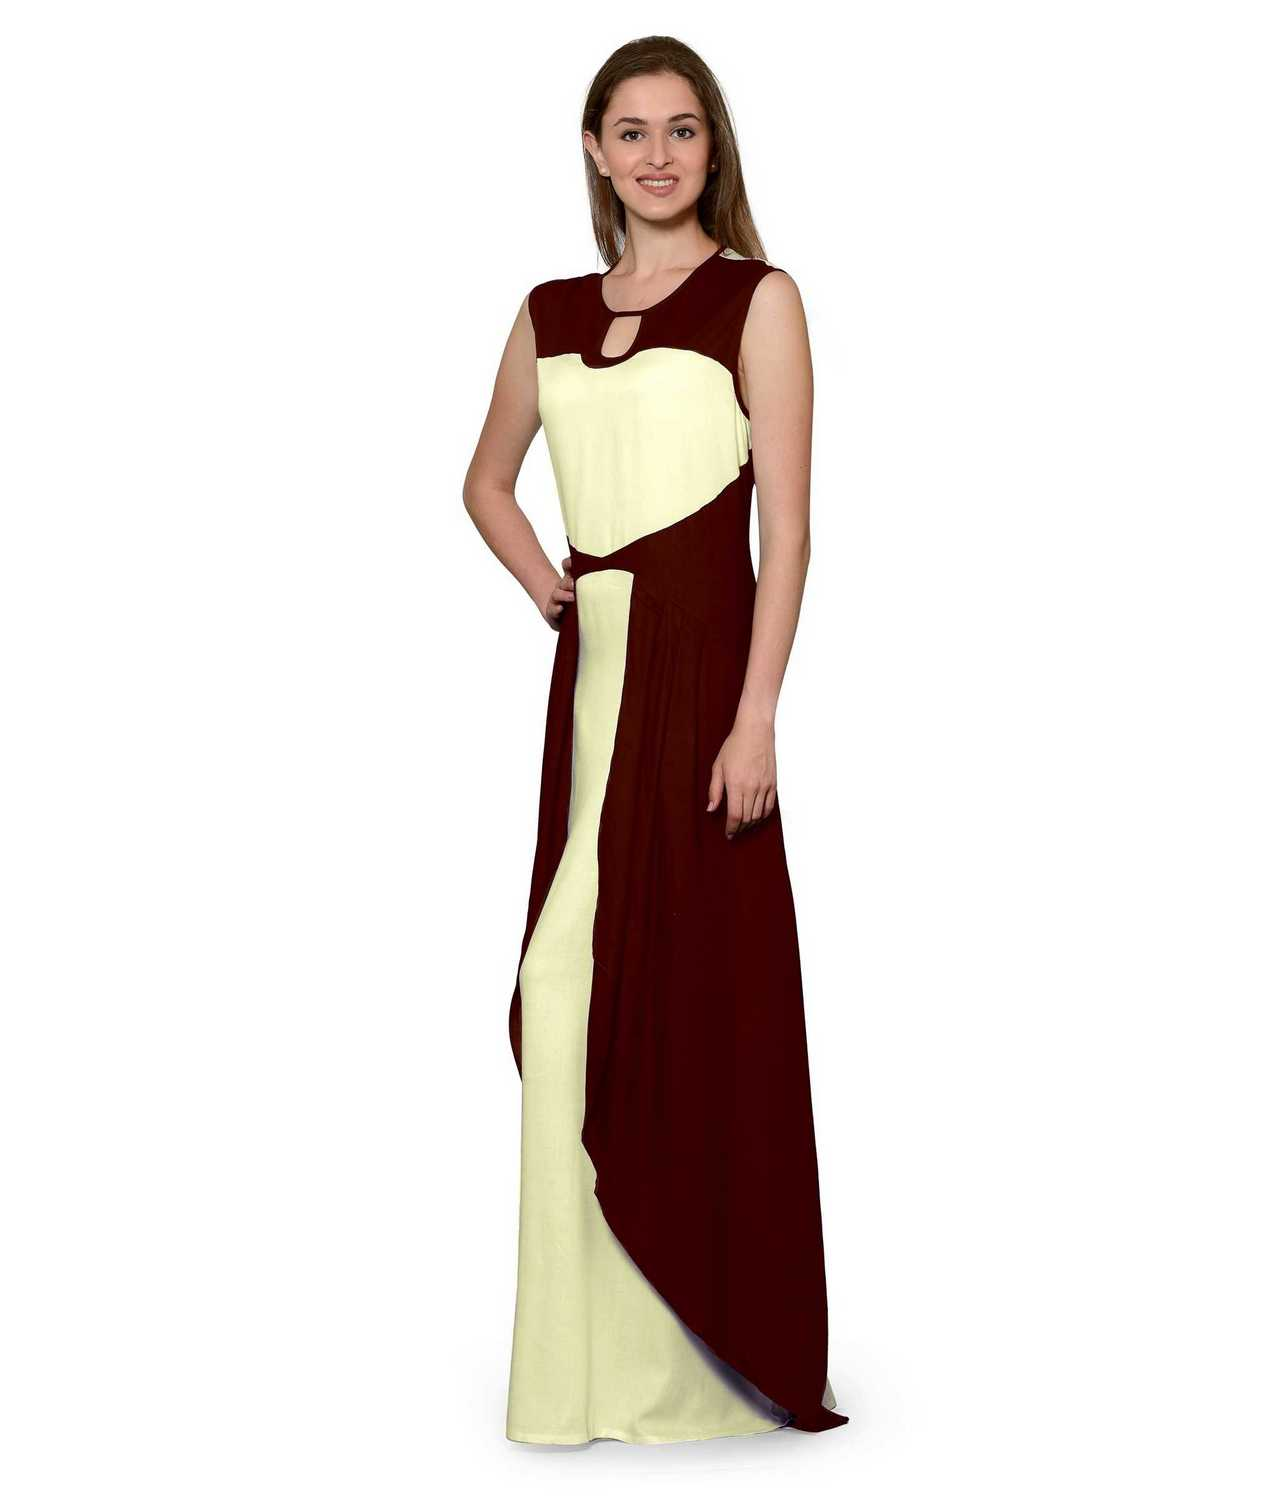 Color Block Maxi Dress or Gown  in Maroon:Cream